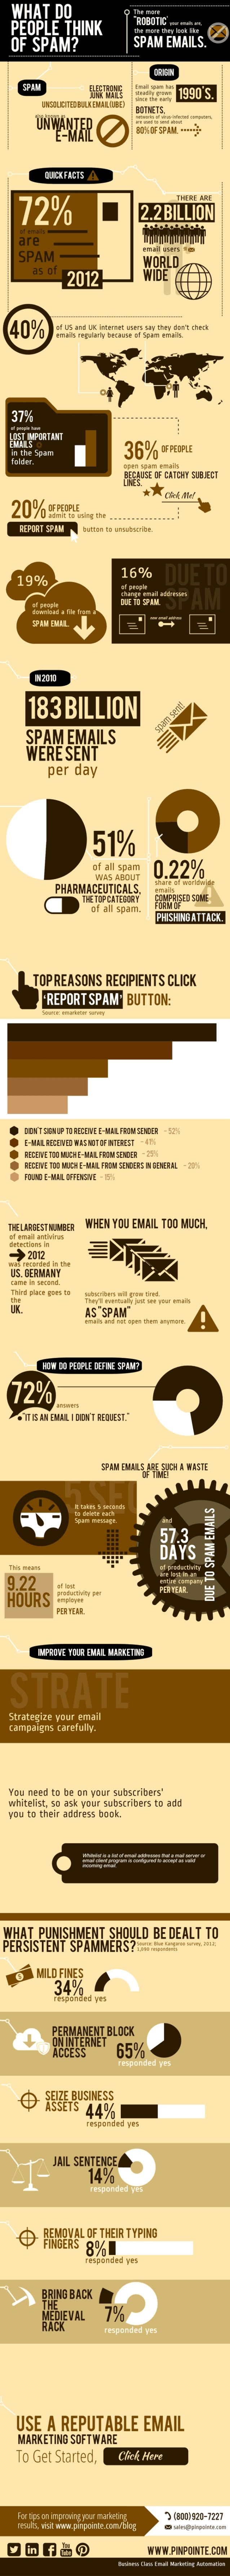 Infographic: What do people think of SPAM?